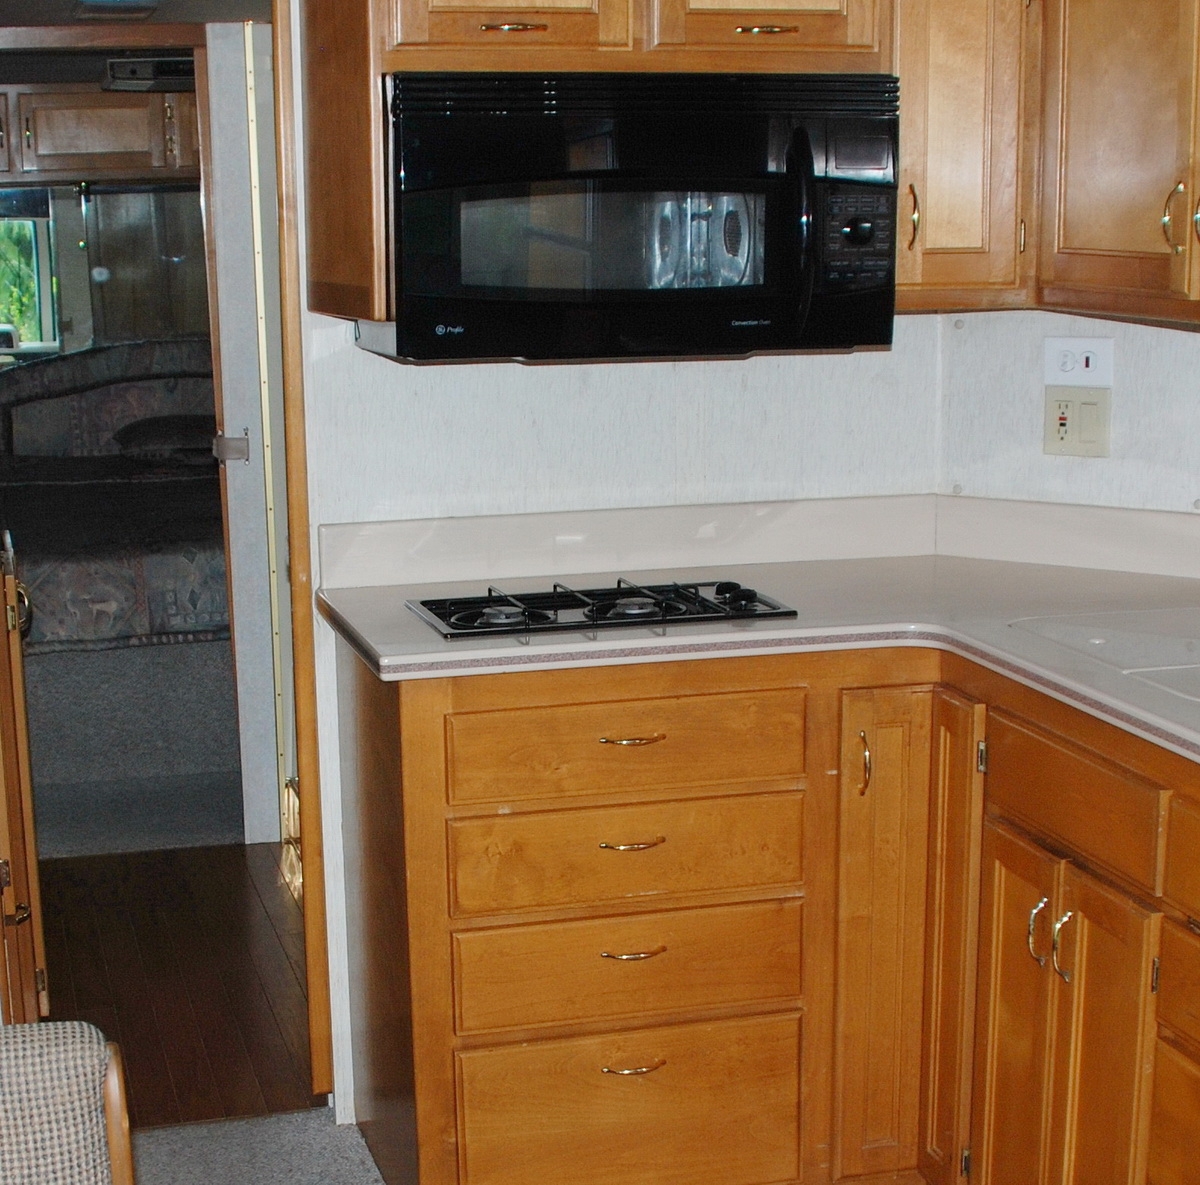 Celtic Safari Galley Stove Wont Stay Lit 1996 Sahara Rv Wiring Diagram Our 3530 Came With A Seaward Princess 2273 Two Burner These Stoves Have Safety Feature Built Into The Gas Valve For Each